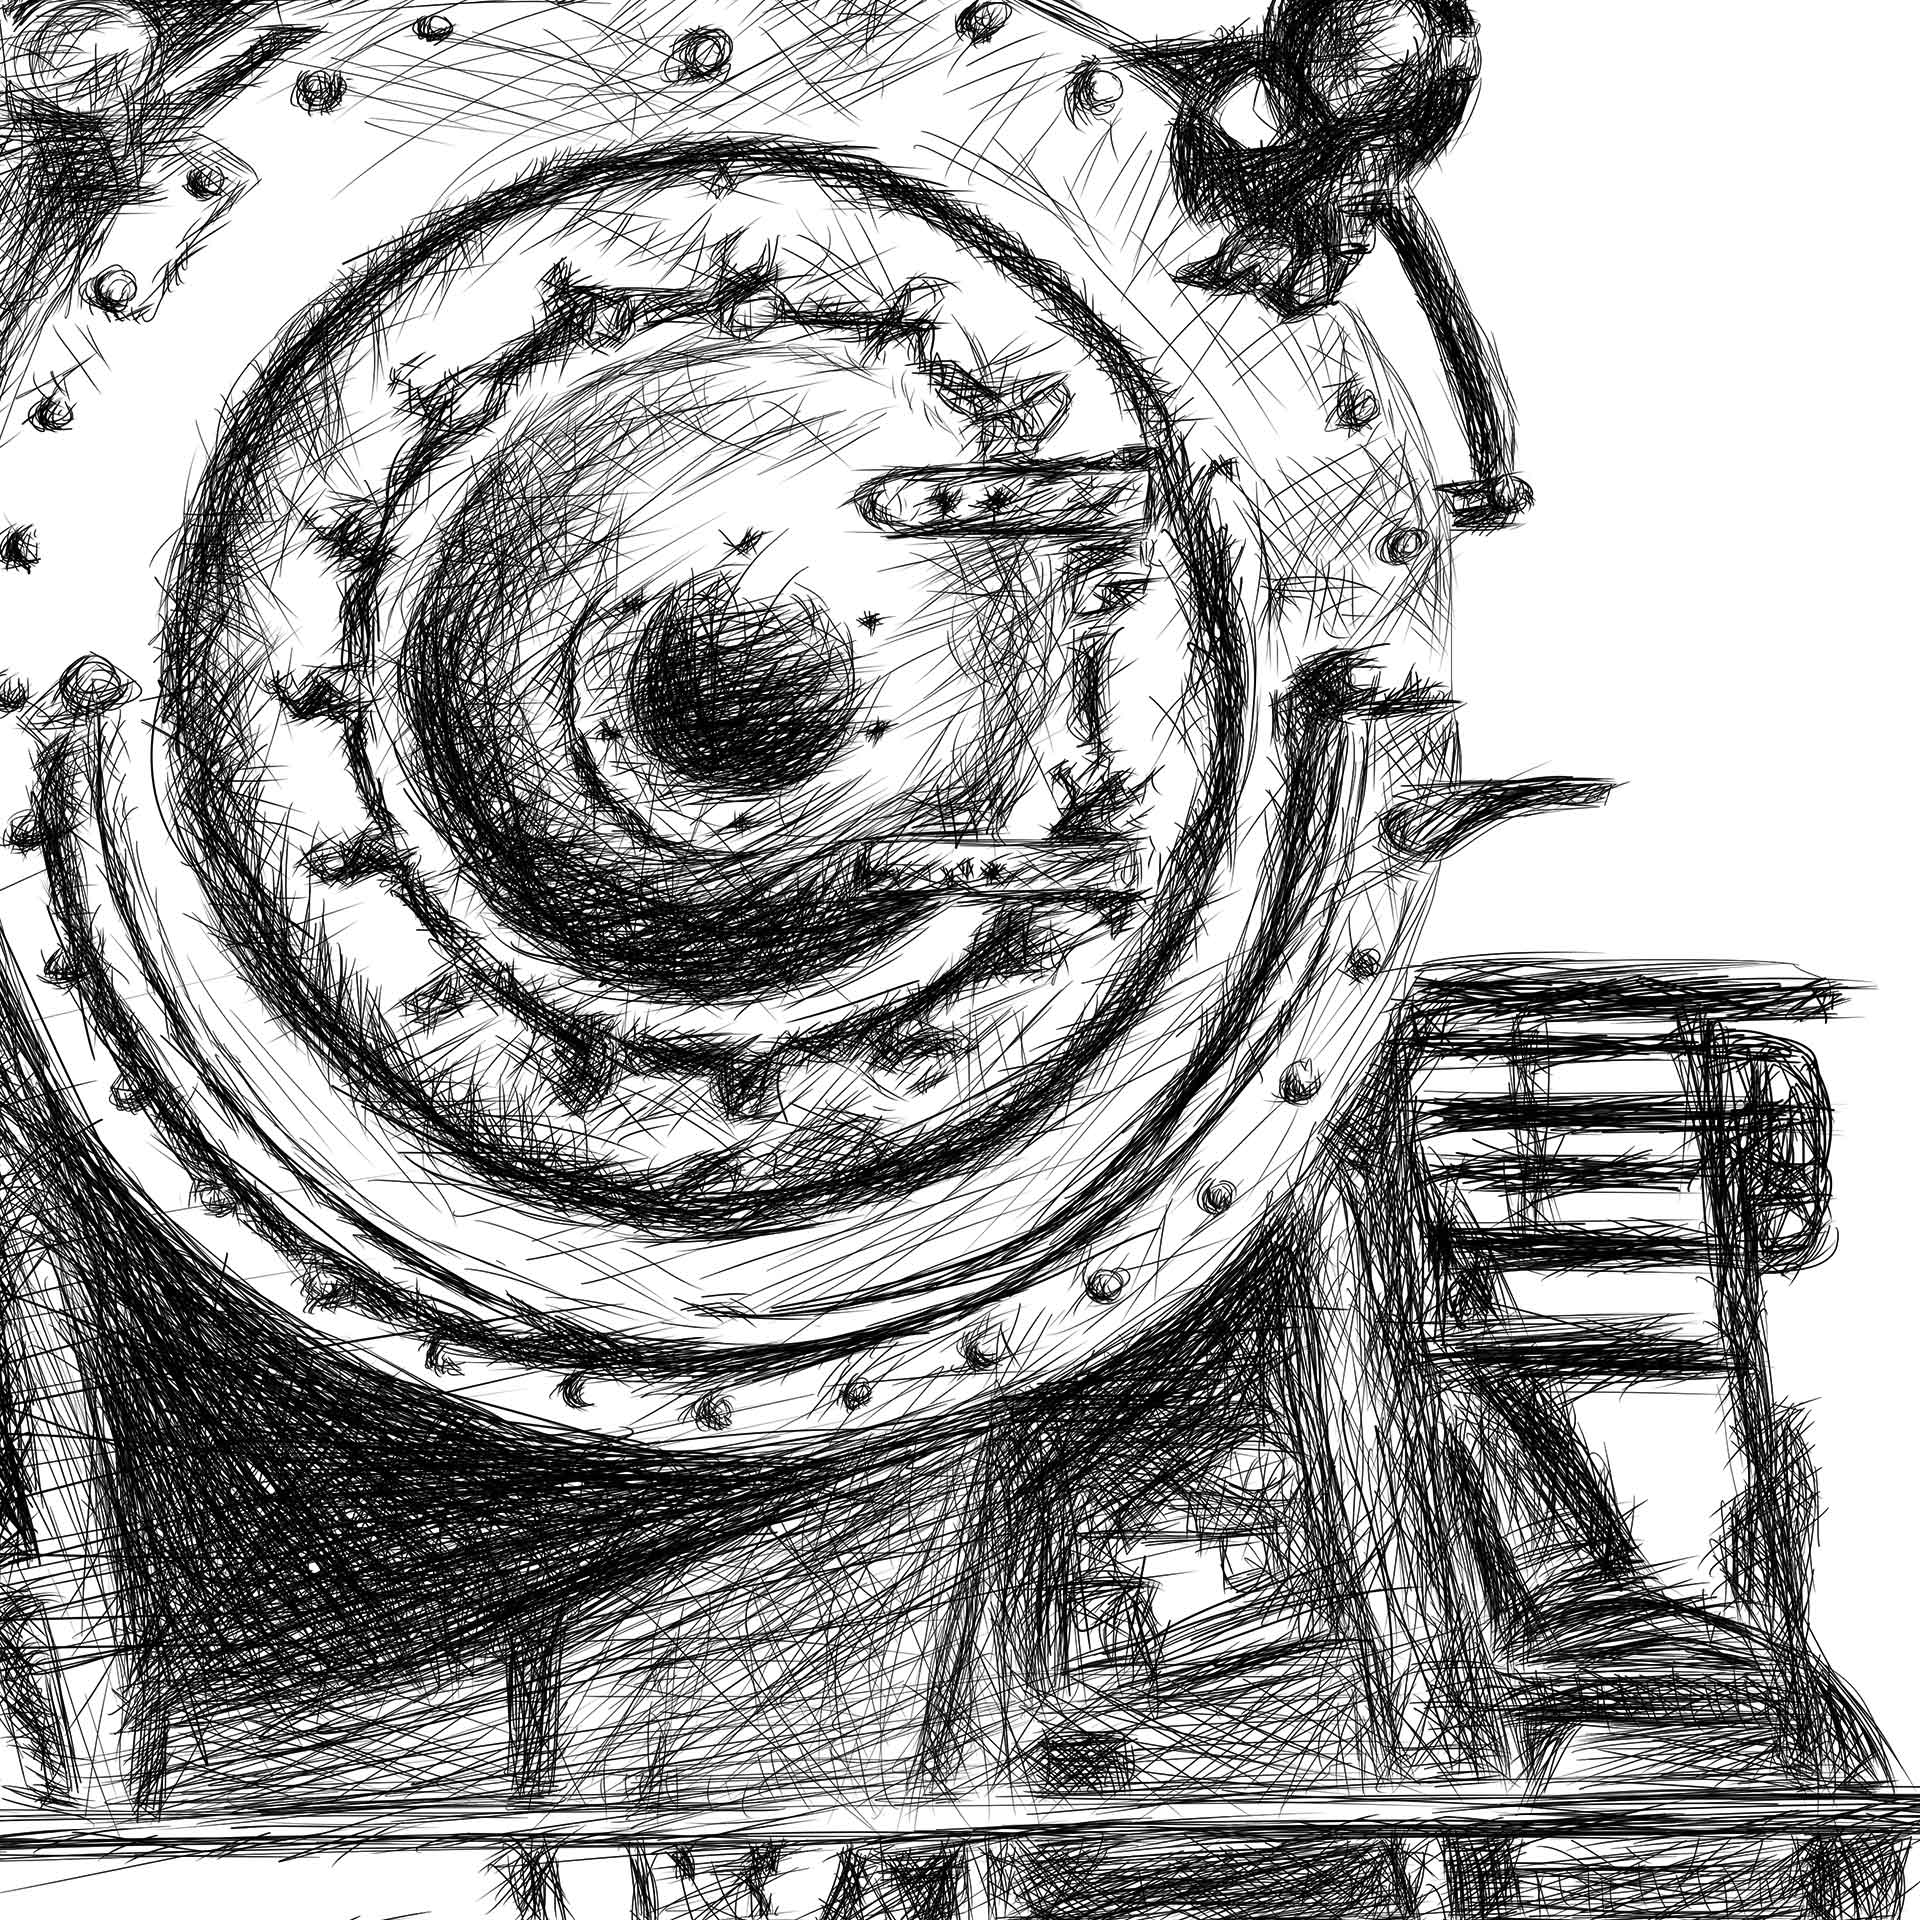 Orient Express train illustration digital pencil lines איור קטר רכבת עיפרון דיגיטלי closeup2